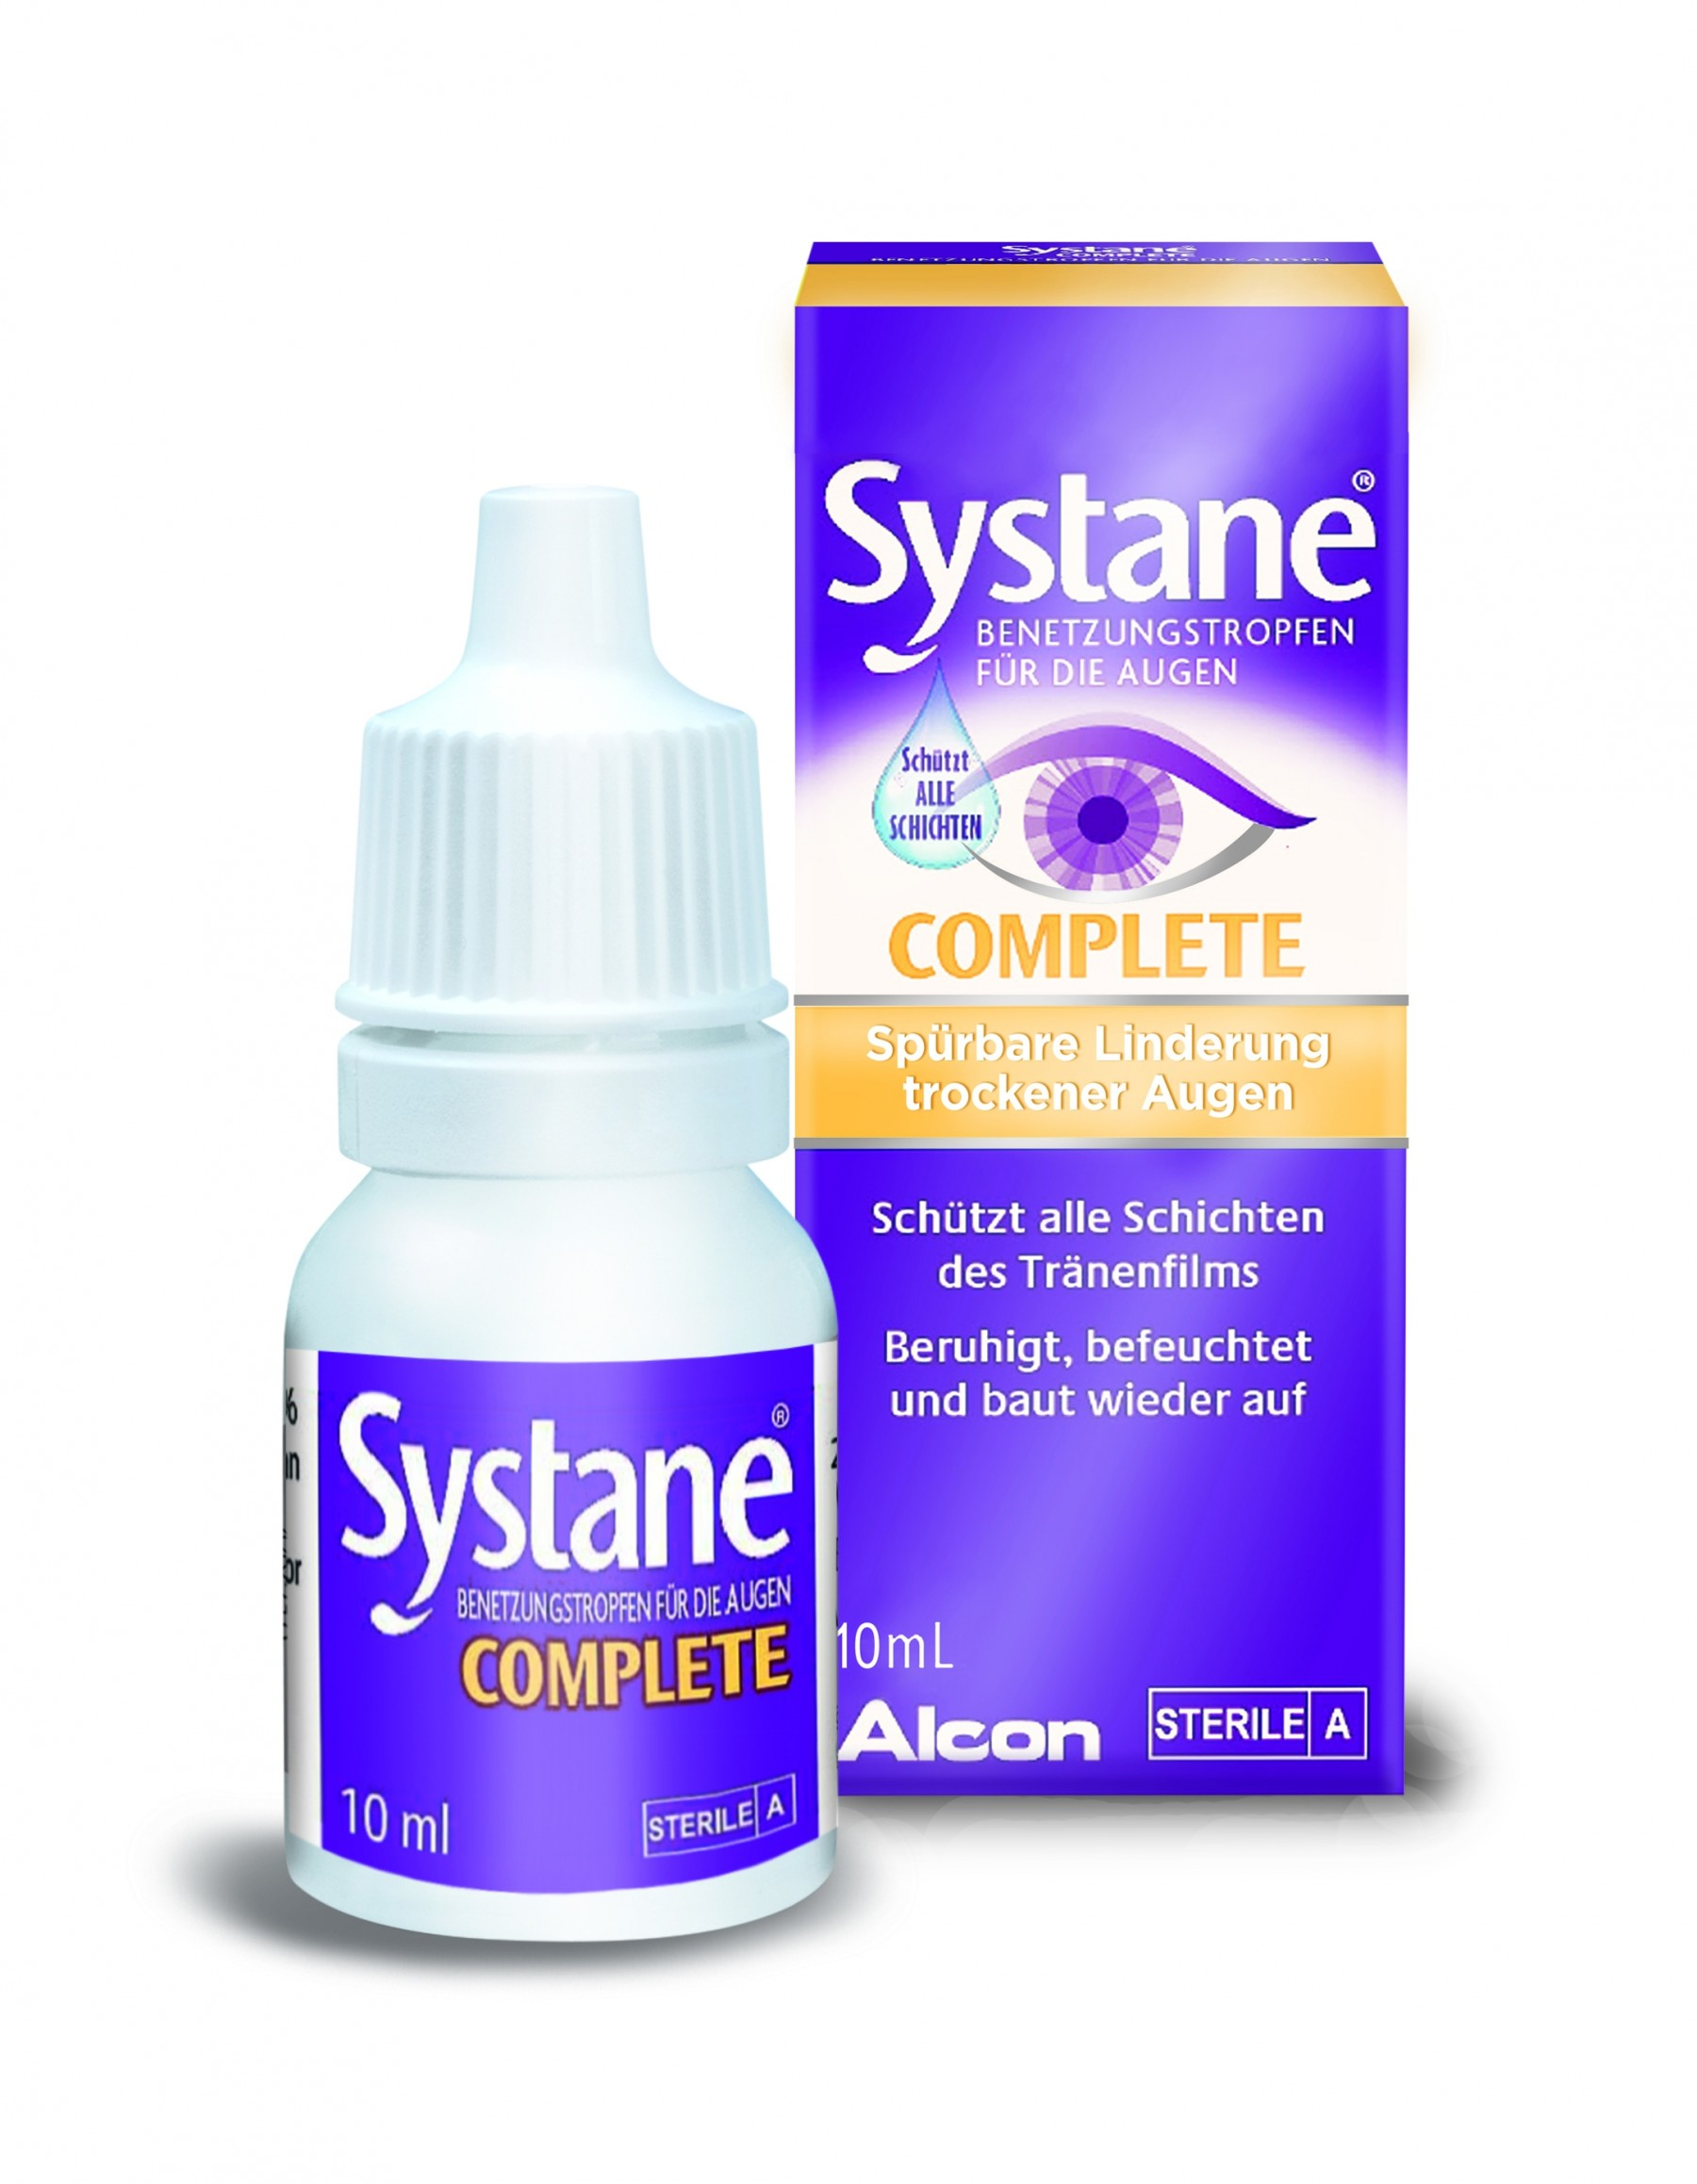 Systane COMPLETE 10ml zoom-image